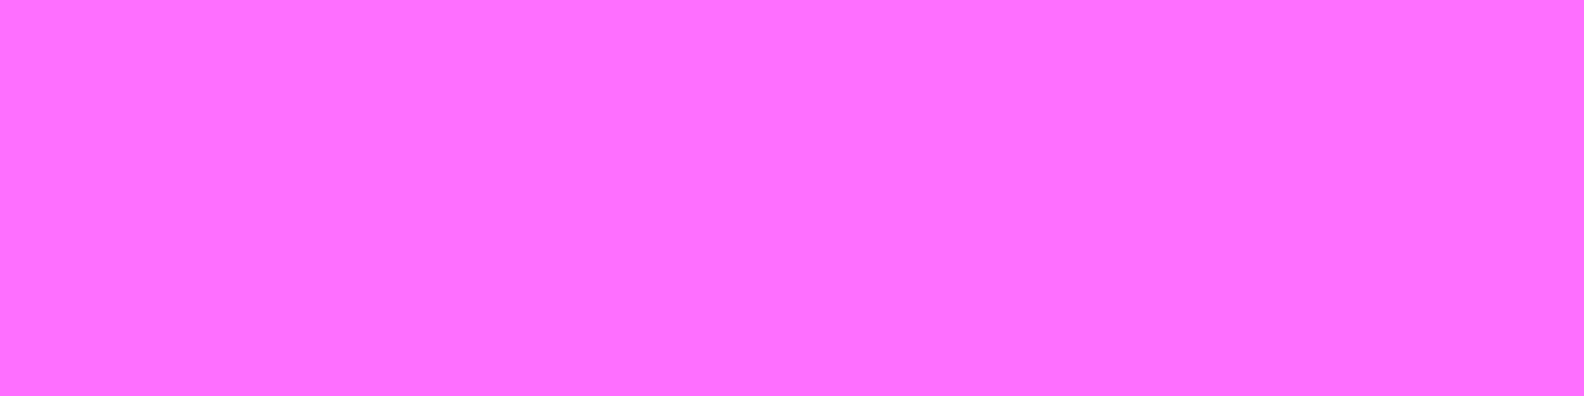 1584x396 Ultra Pink Solid Color Background